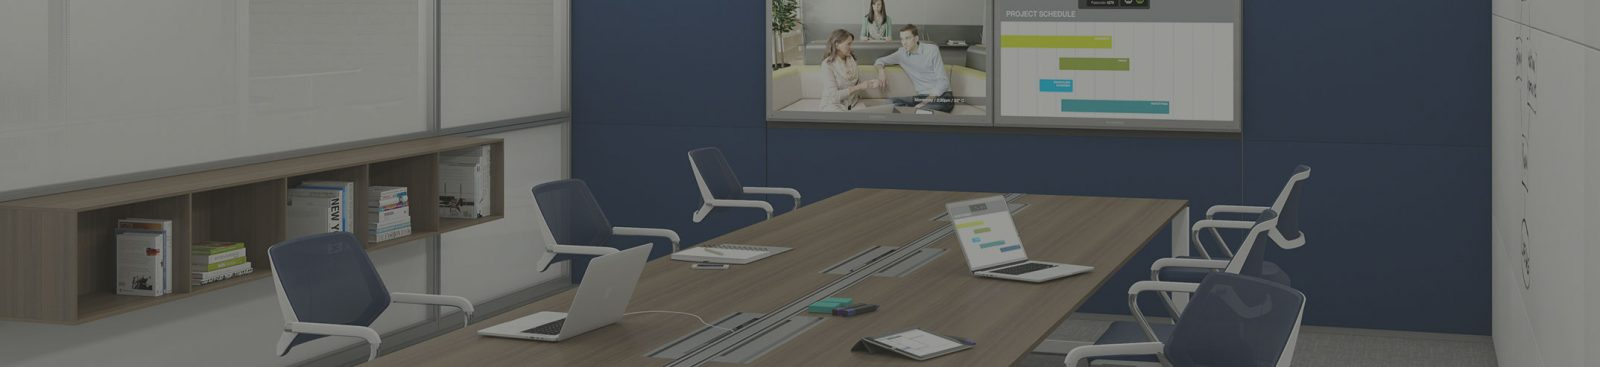 Video Conference Spaces image